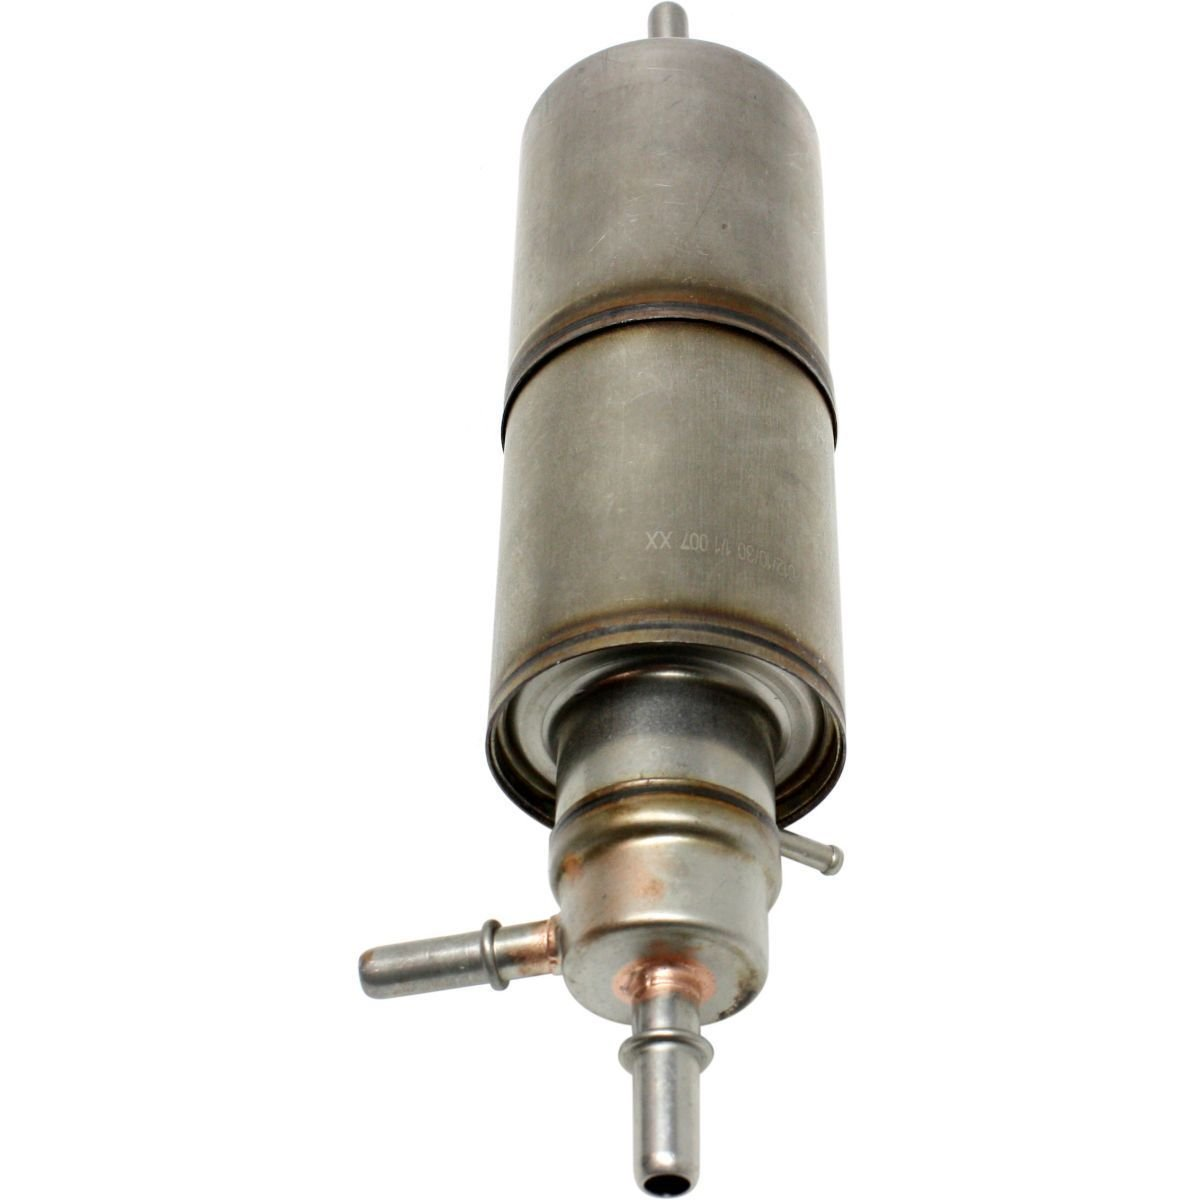 Diften 345 A0105 X01 New Fuel Filter Ml Class Mb 01 Ml320 Location Mercedes Benz 164 Chassis Ml430 163 Ml55 Amg Automotive